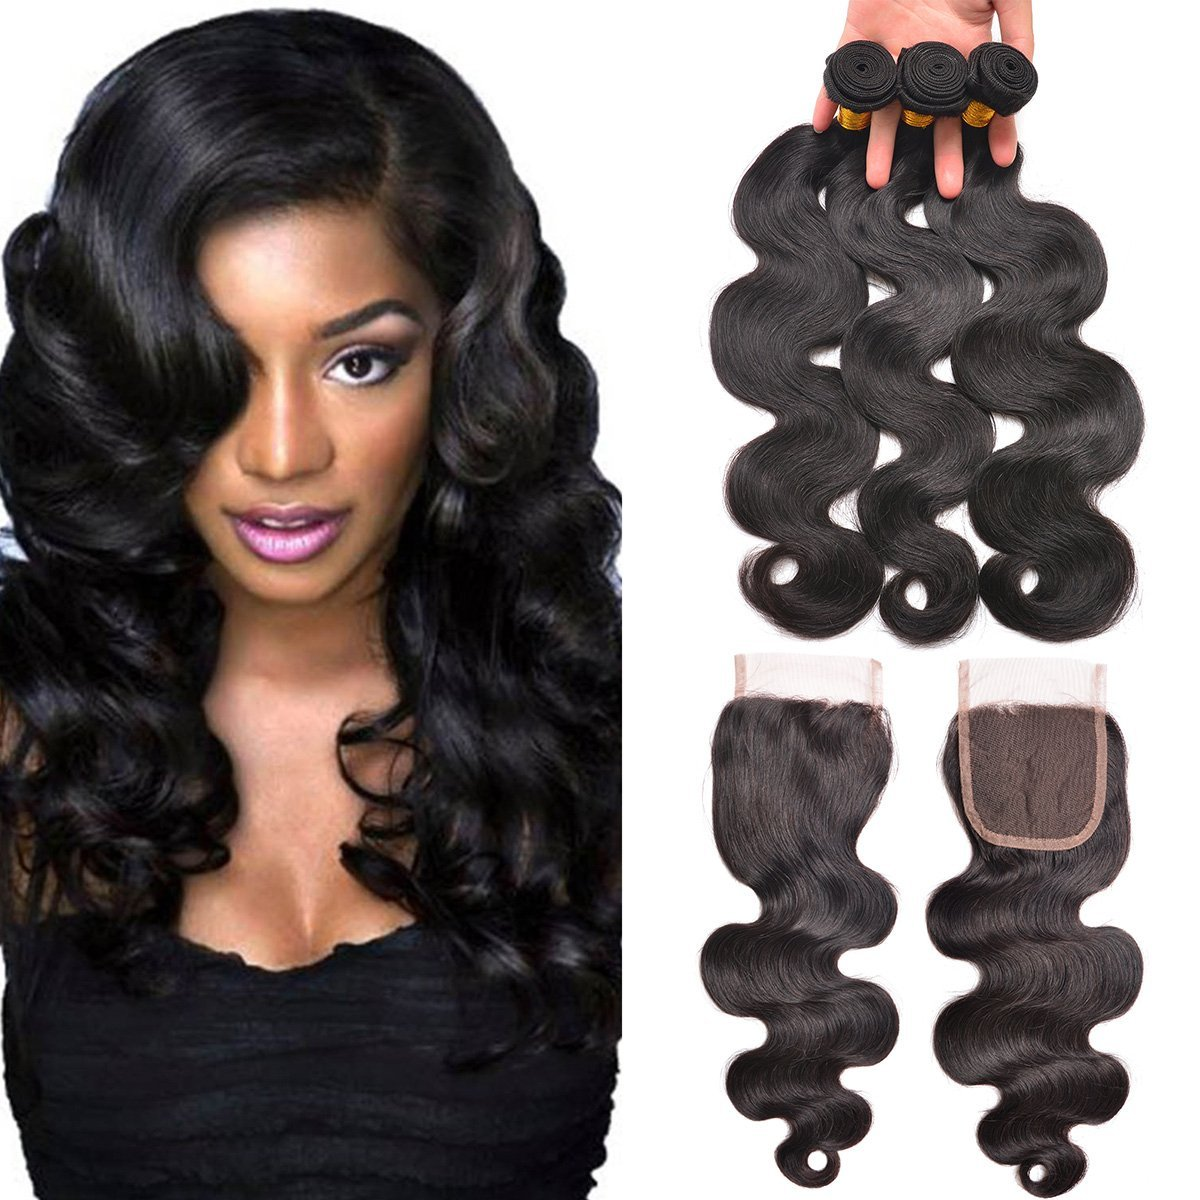 Cheap 12 Inch Brazilian Hair Weave Find 12 Inch Brazilian Hair